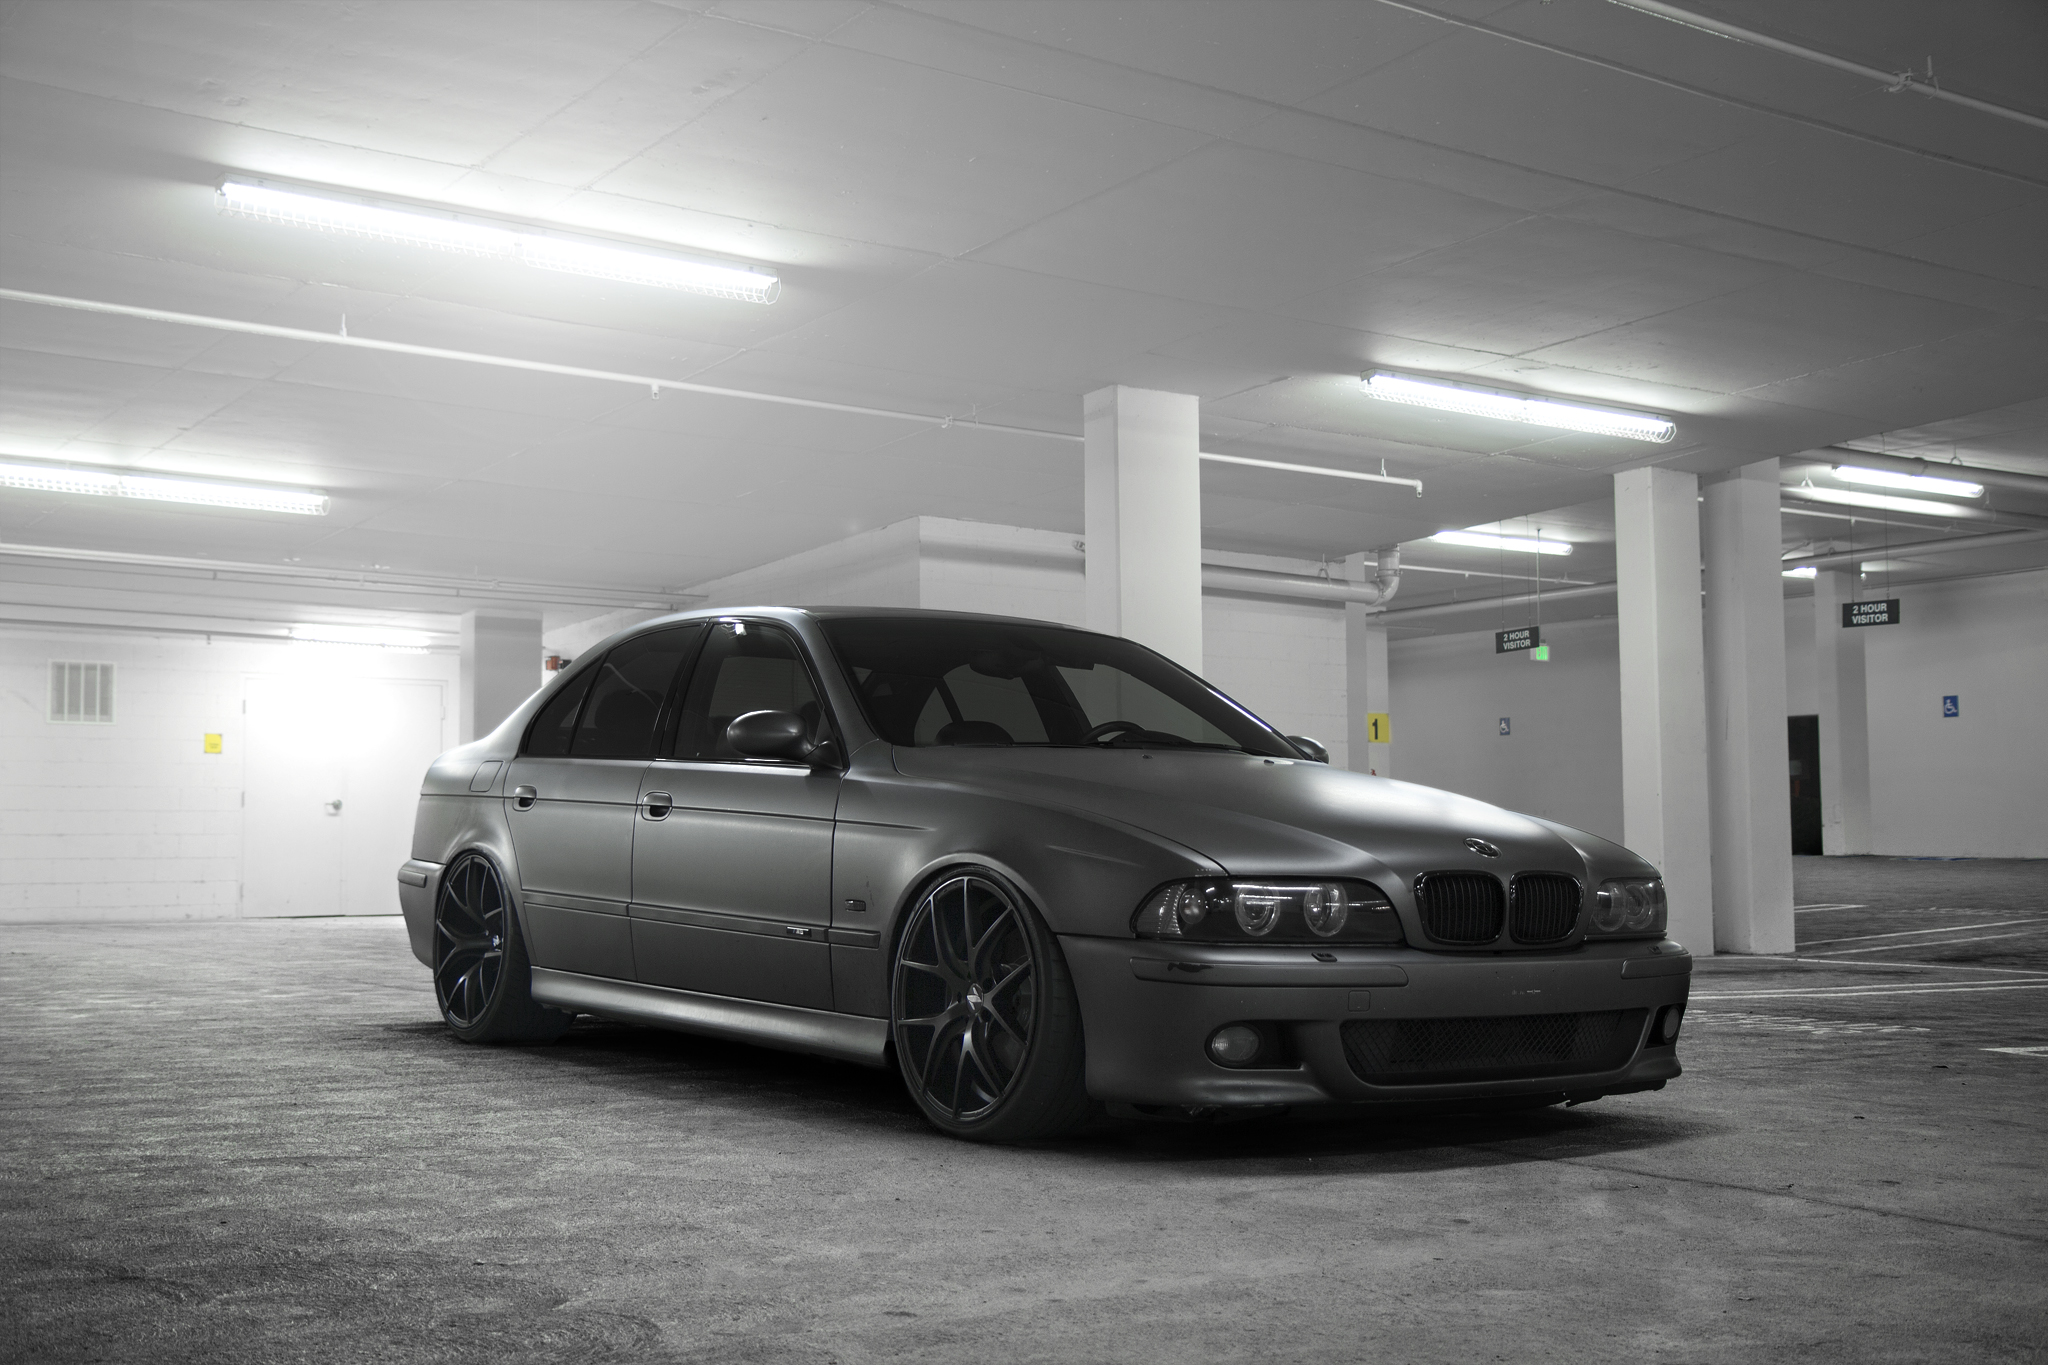 BMW E39 M5 Grey Black ZS05